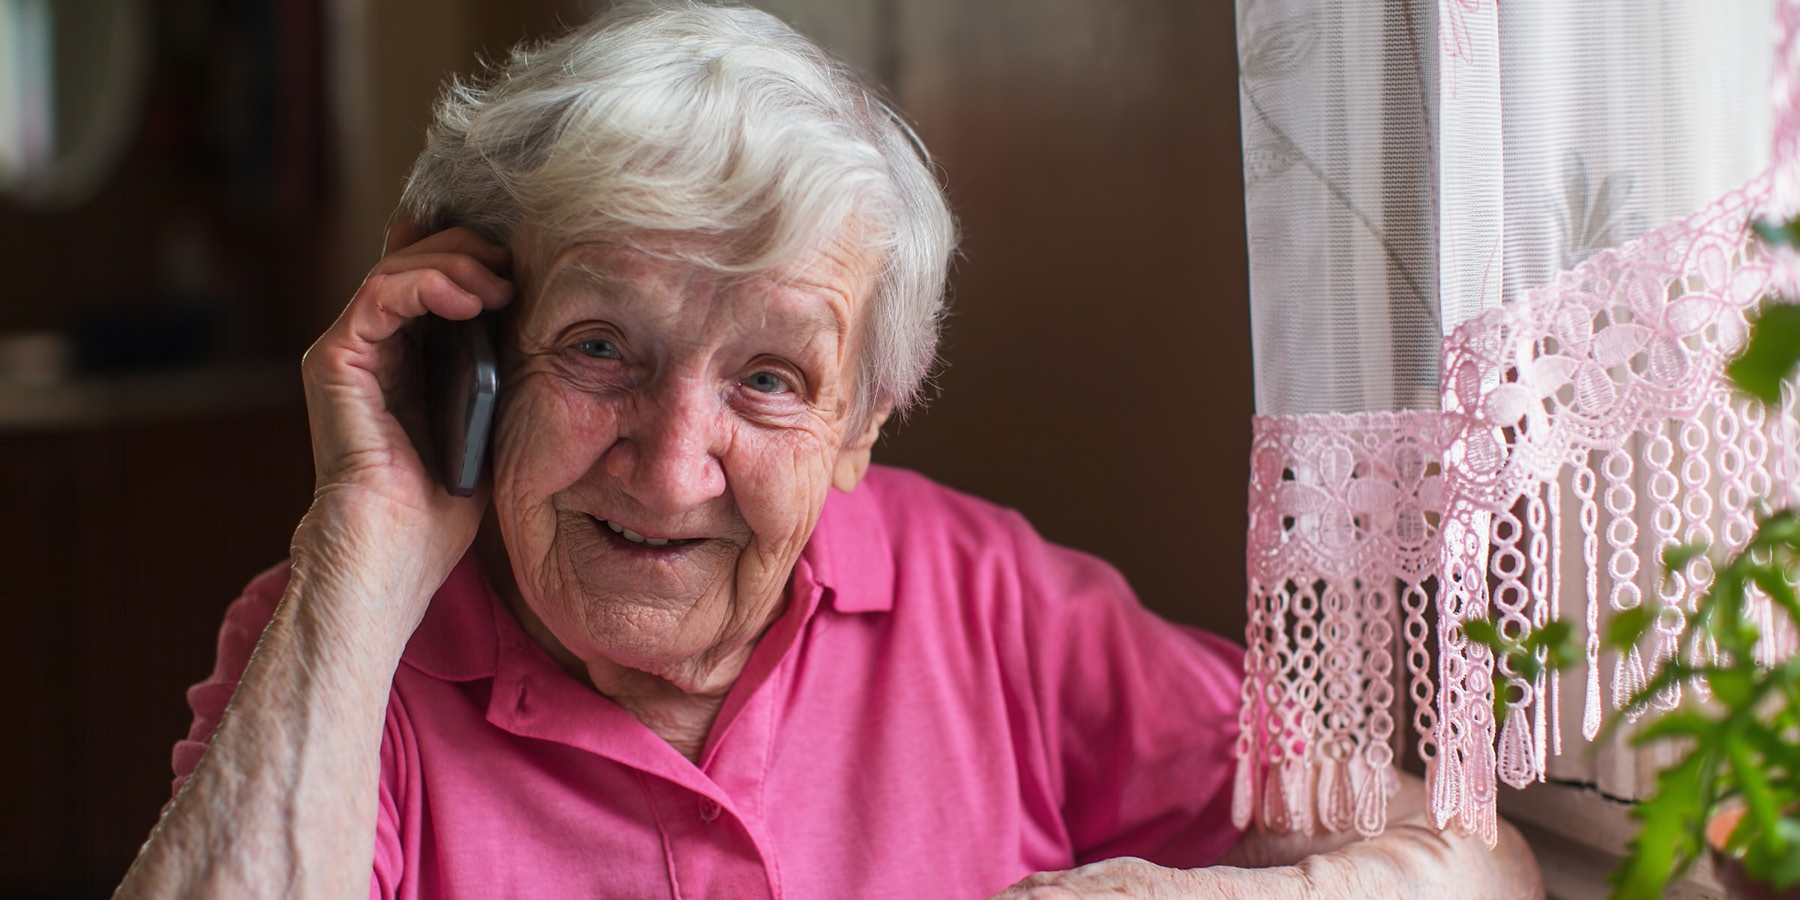 Older woman in pink shirt talking on the phone